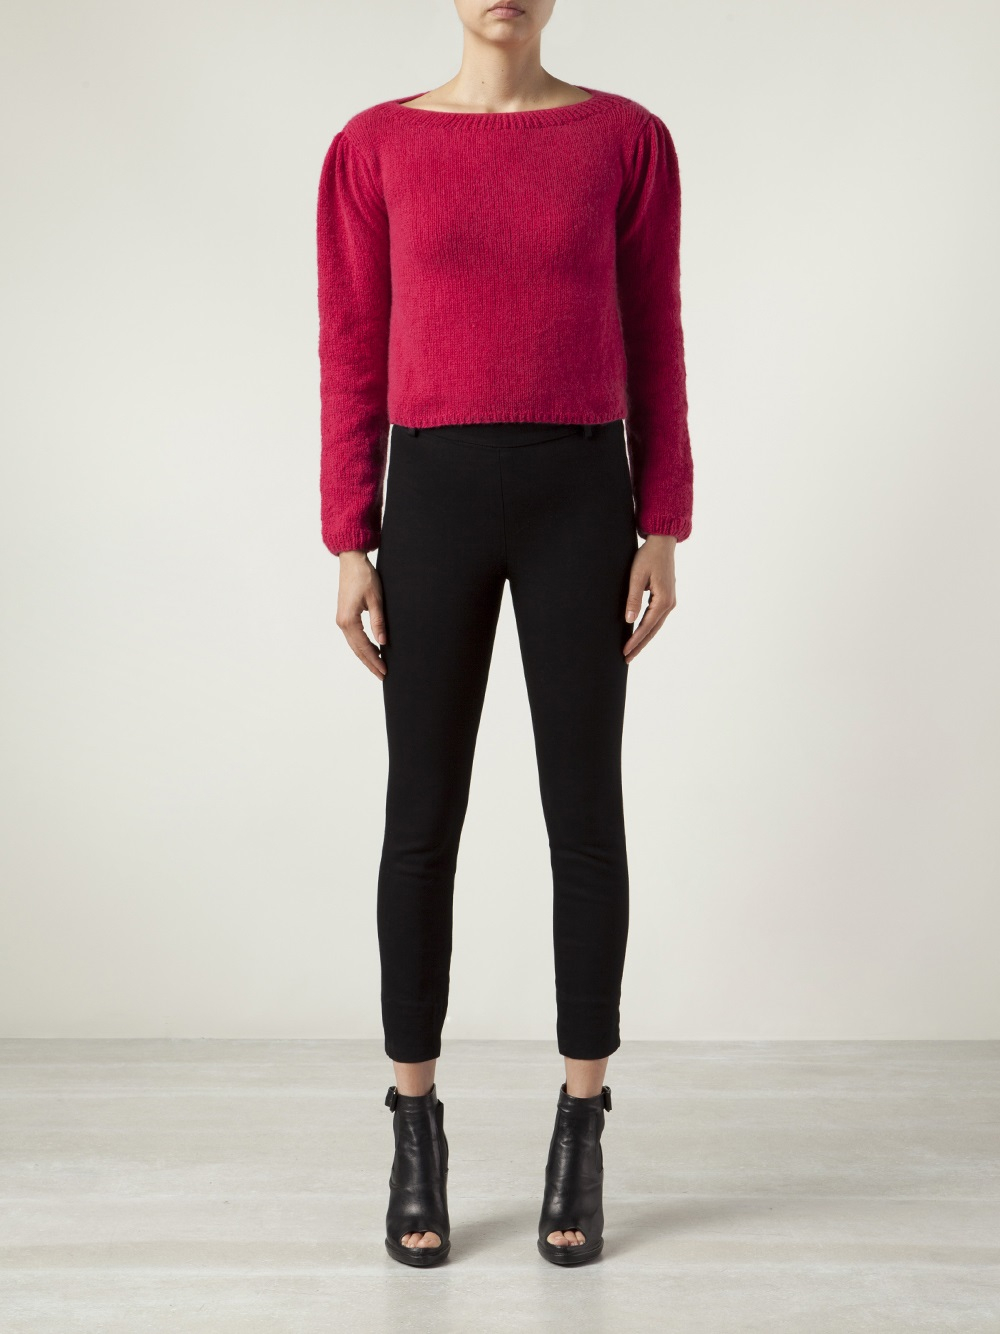 Ryan roche Cashmere Cropped Sweater in Pink   Lyst